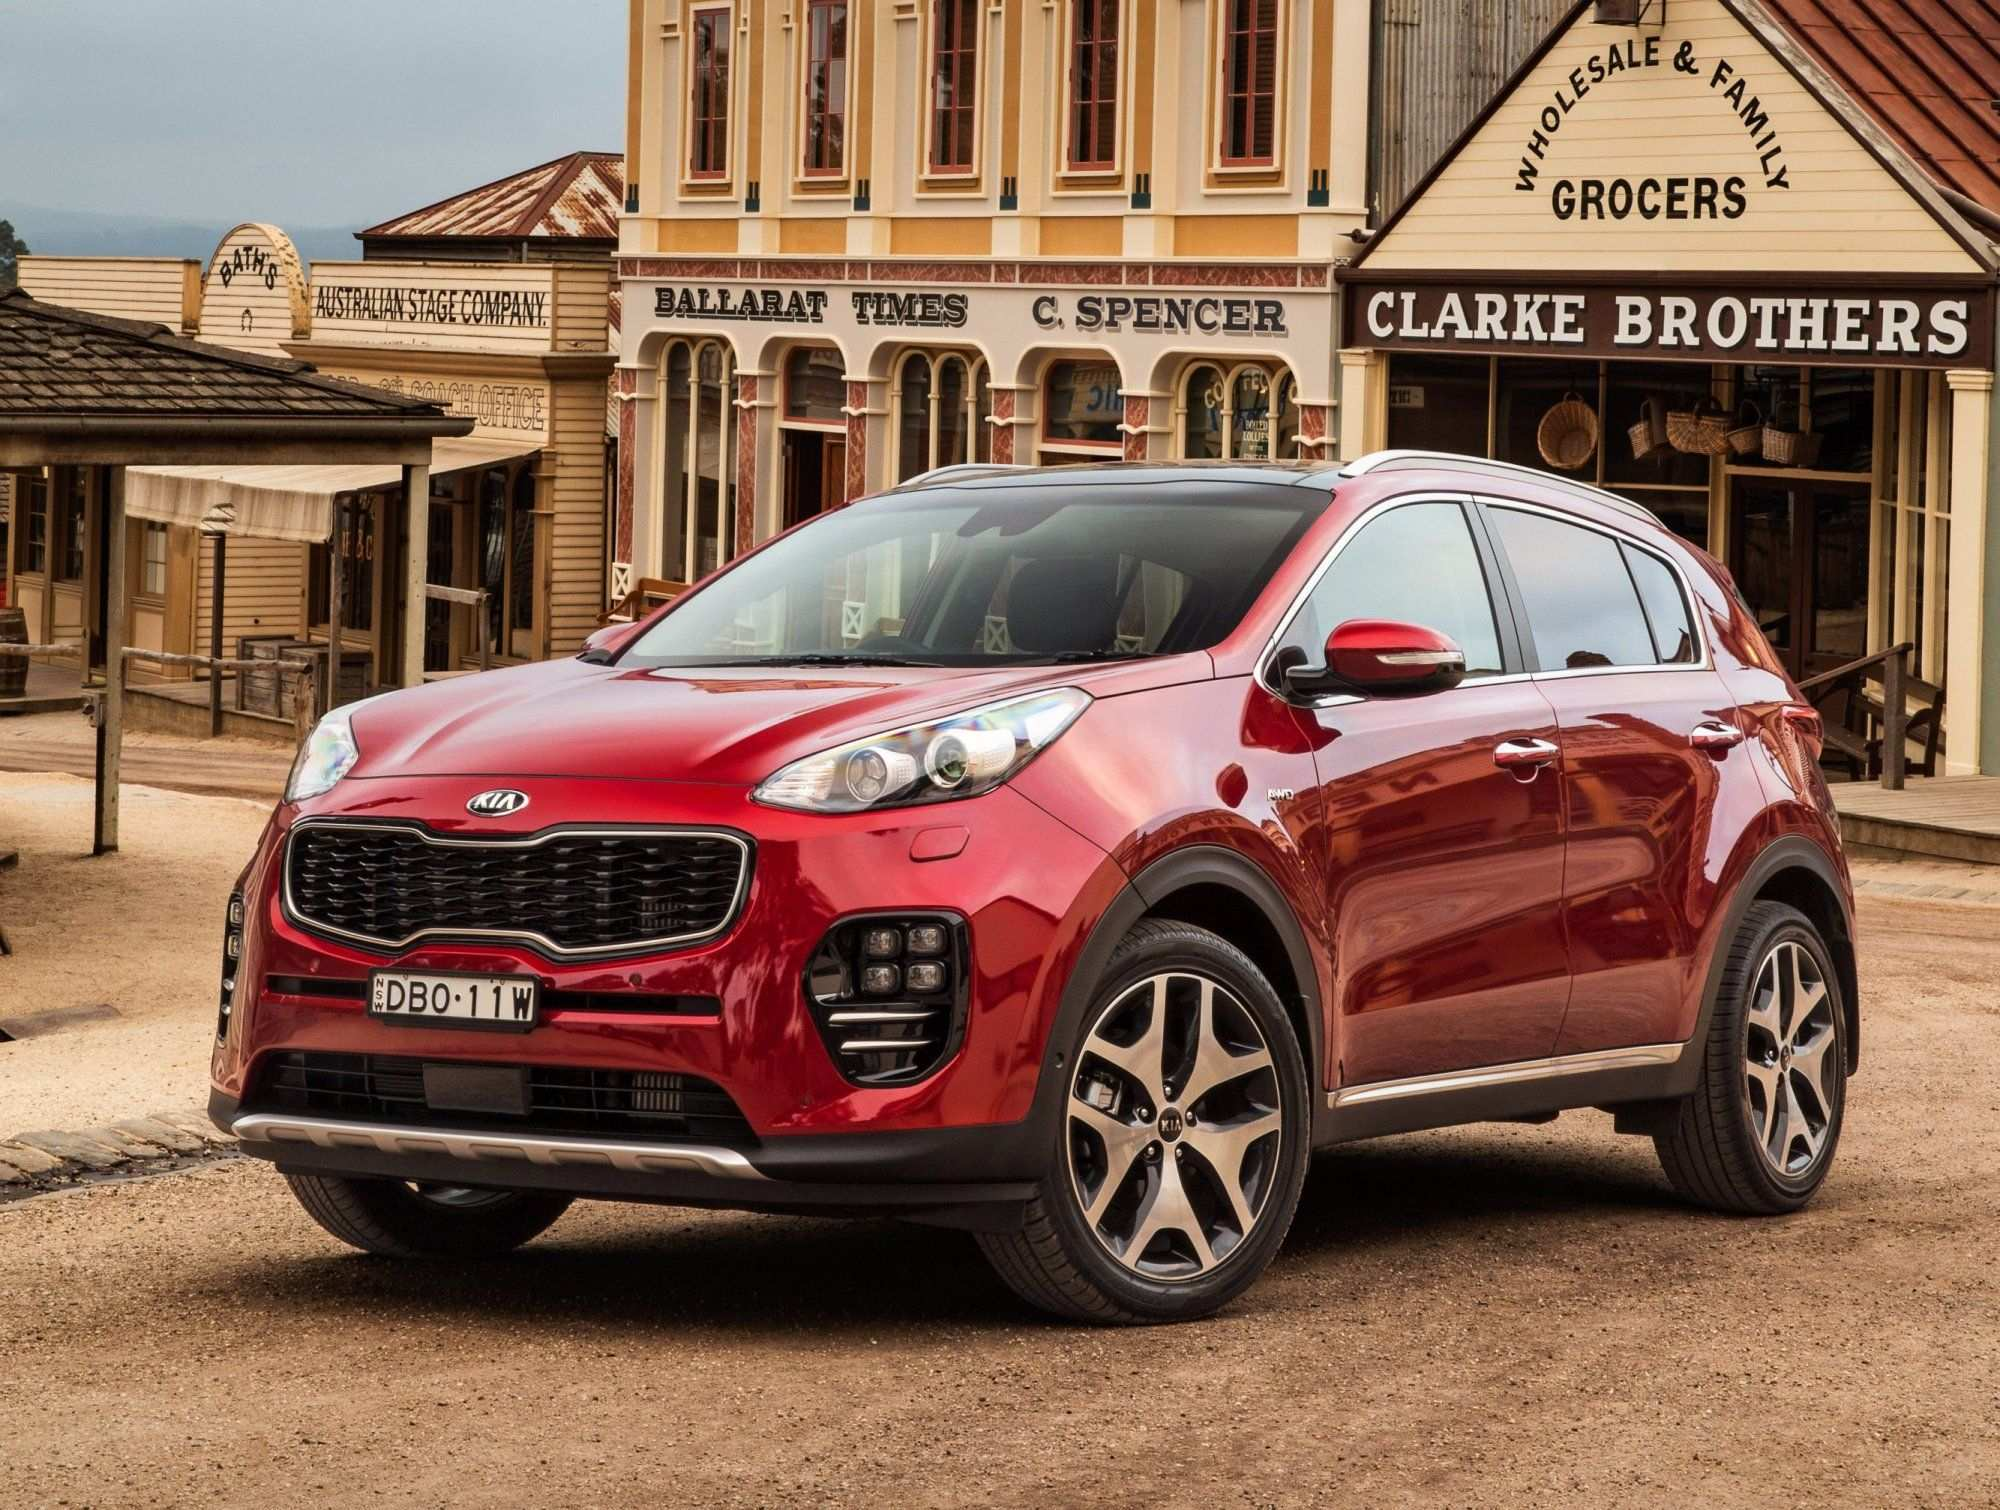 35 New The Kia Sportage Gt Line 2019 Review And Specs Pricing with The Kia Sportage Gt Line 2019 Review And Specs